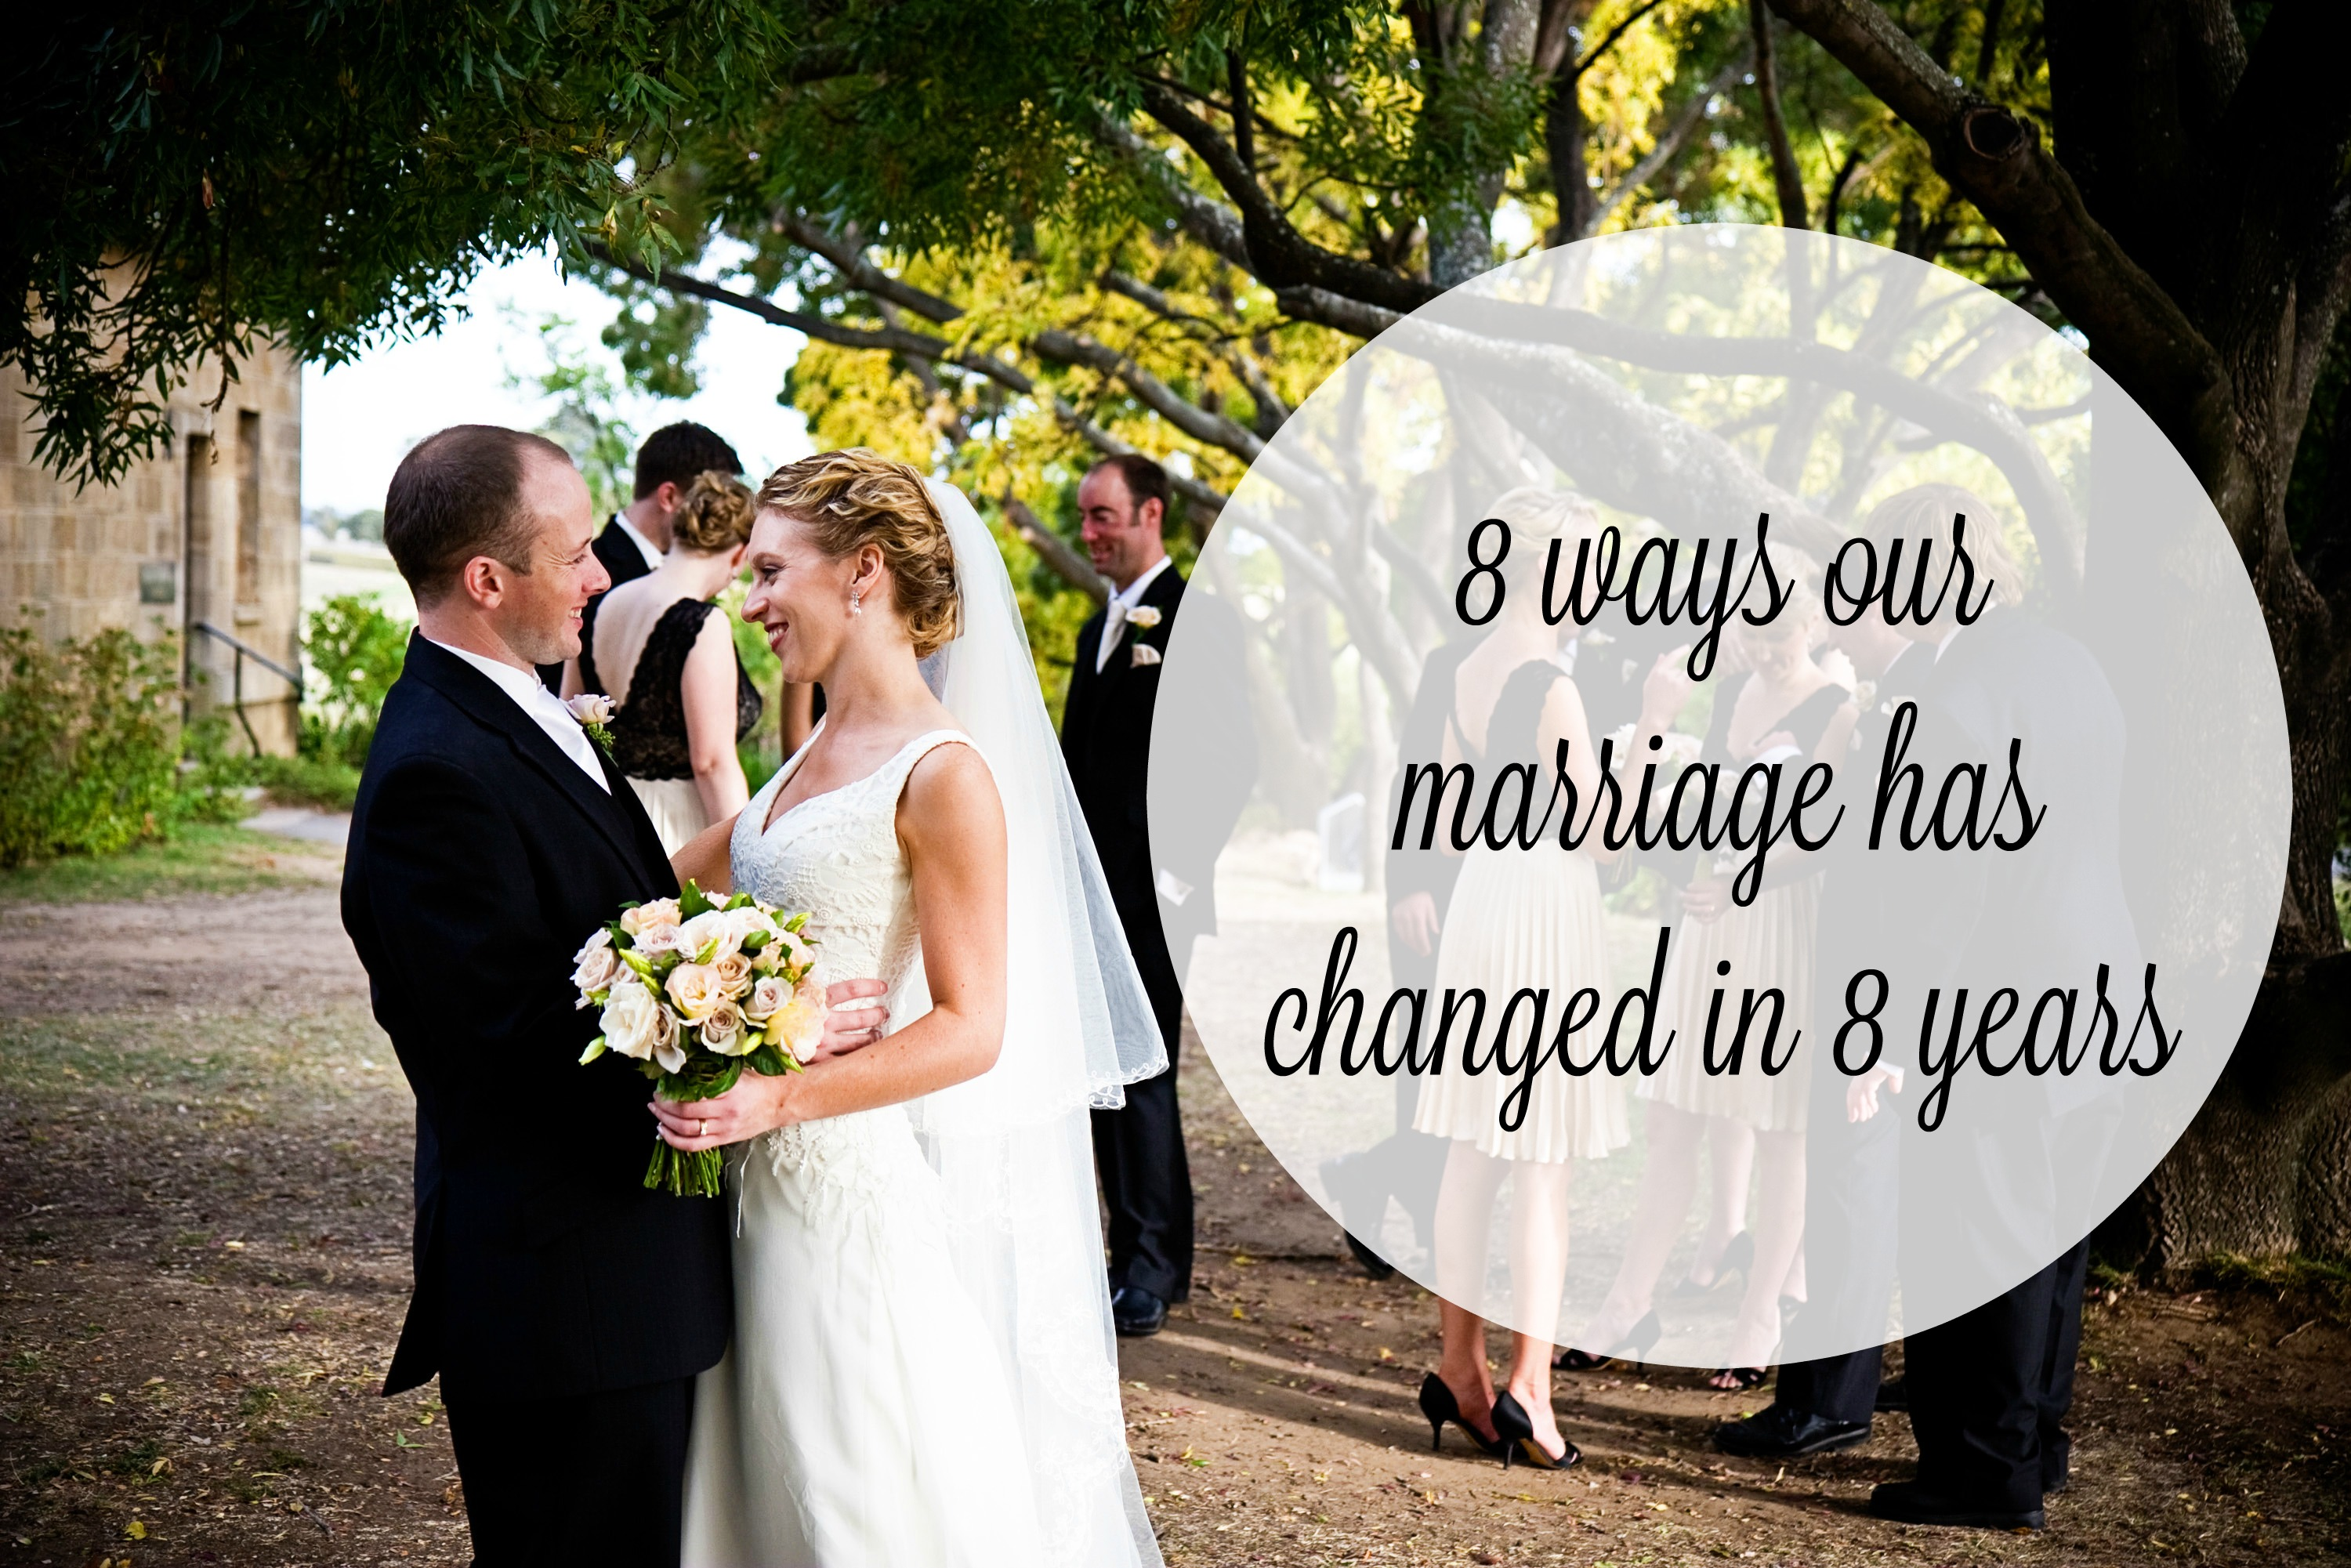 8 ways our marriage has changed in 8 years